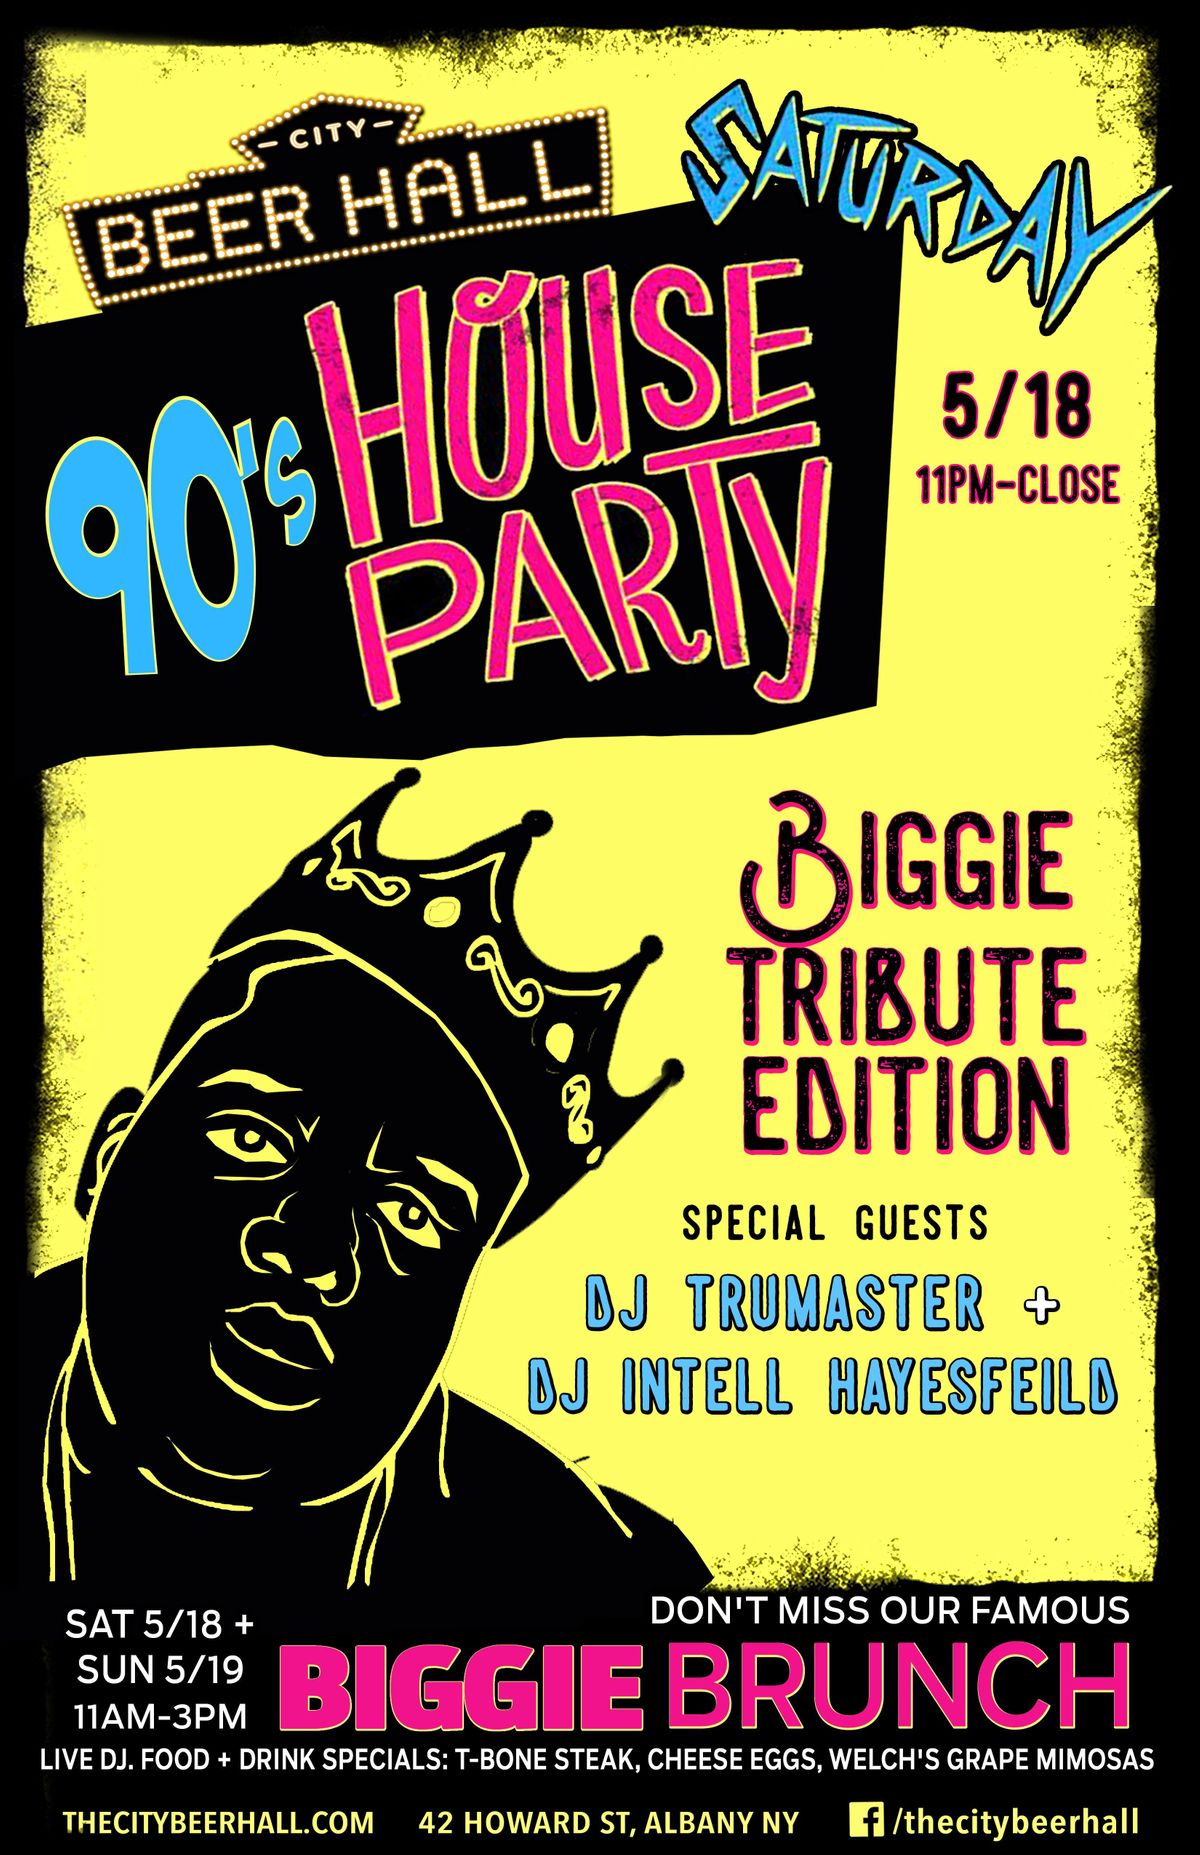 90s House Party - Biggie Tribute Edition